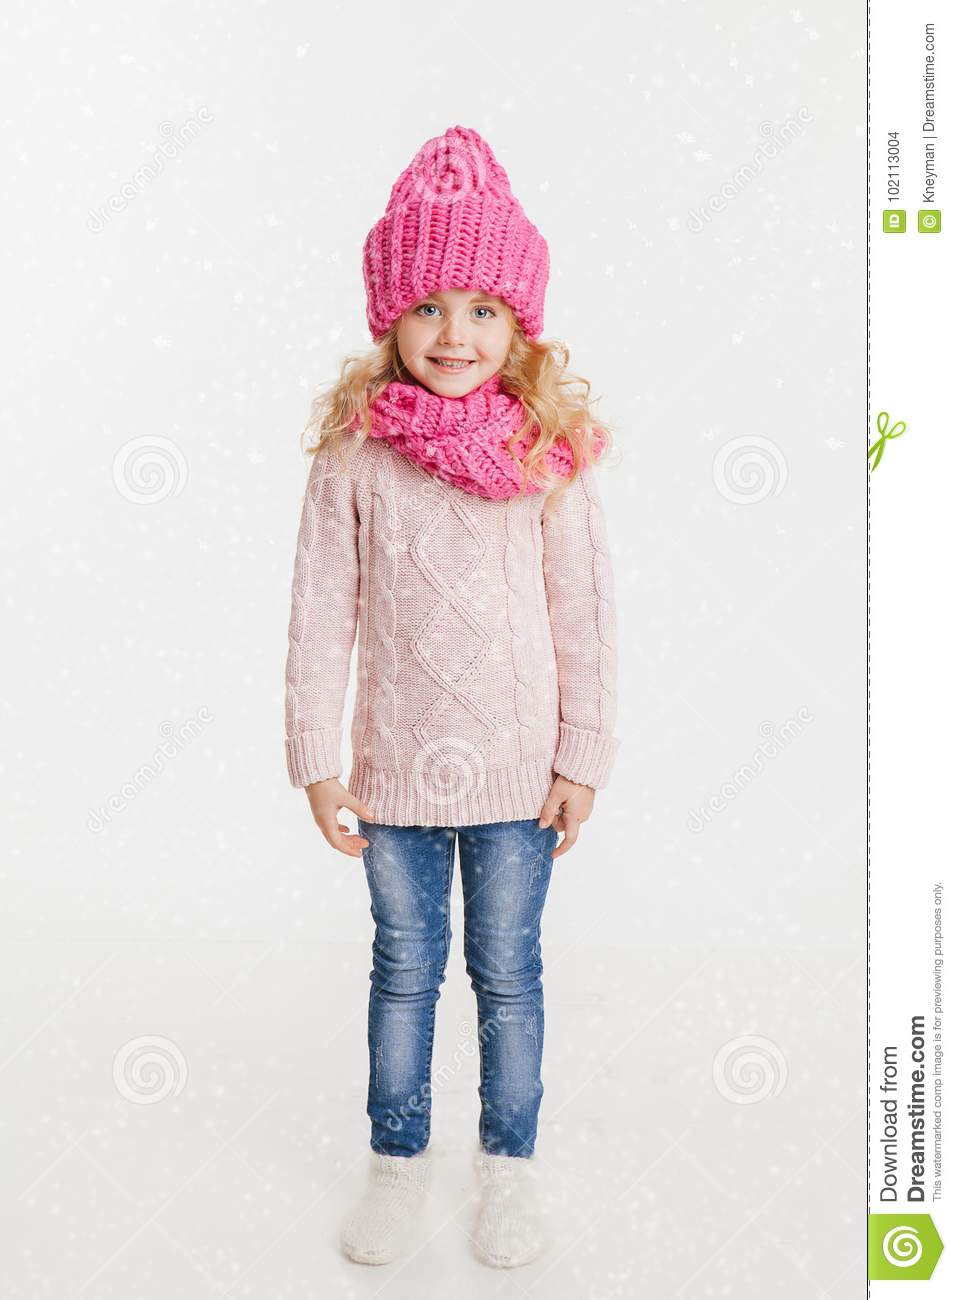 e82991470f5 Winter clothes. Portrait of little curly girl in knitted pink winter hat  and scarf